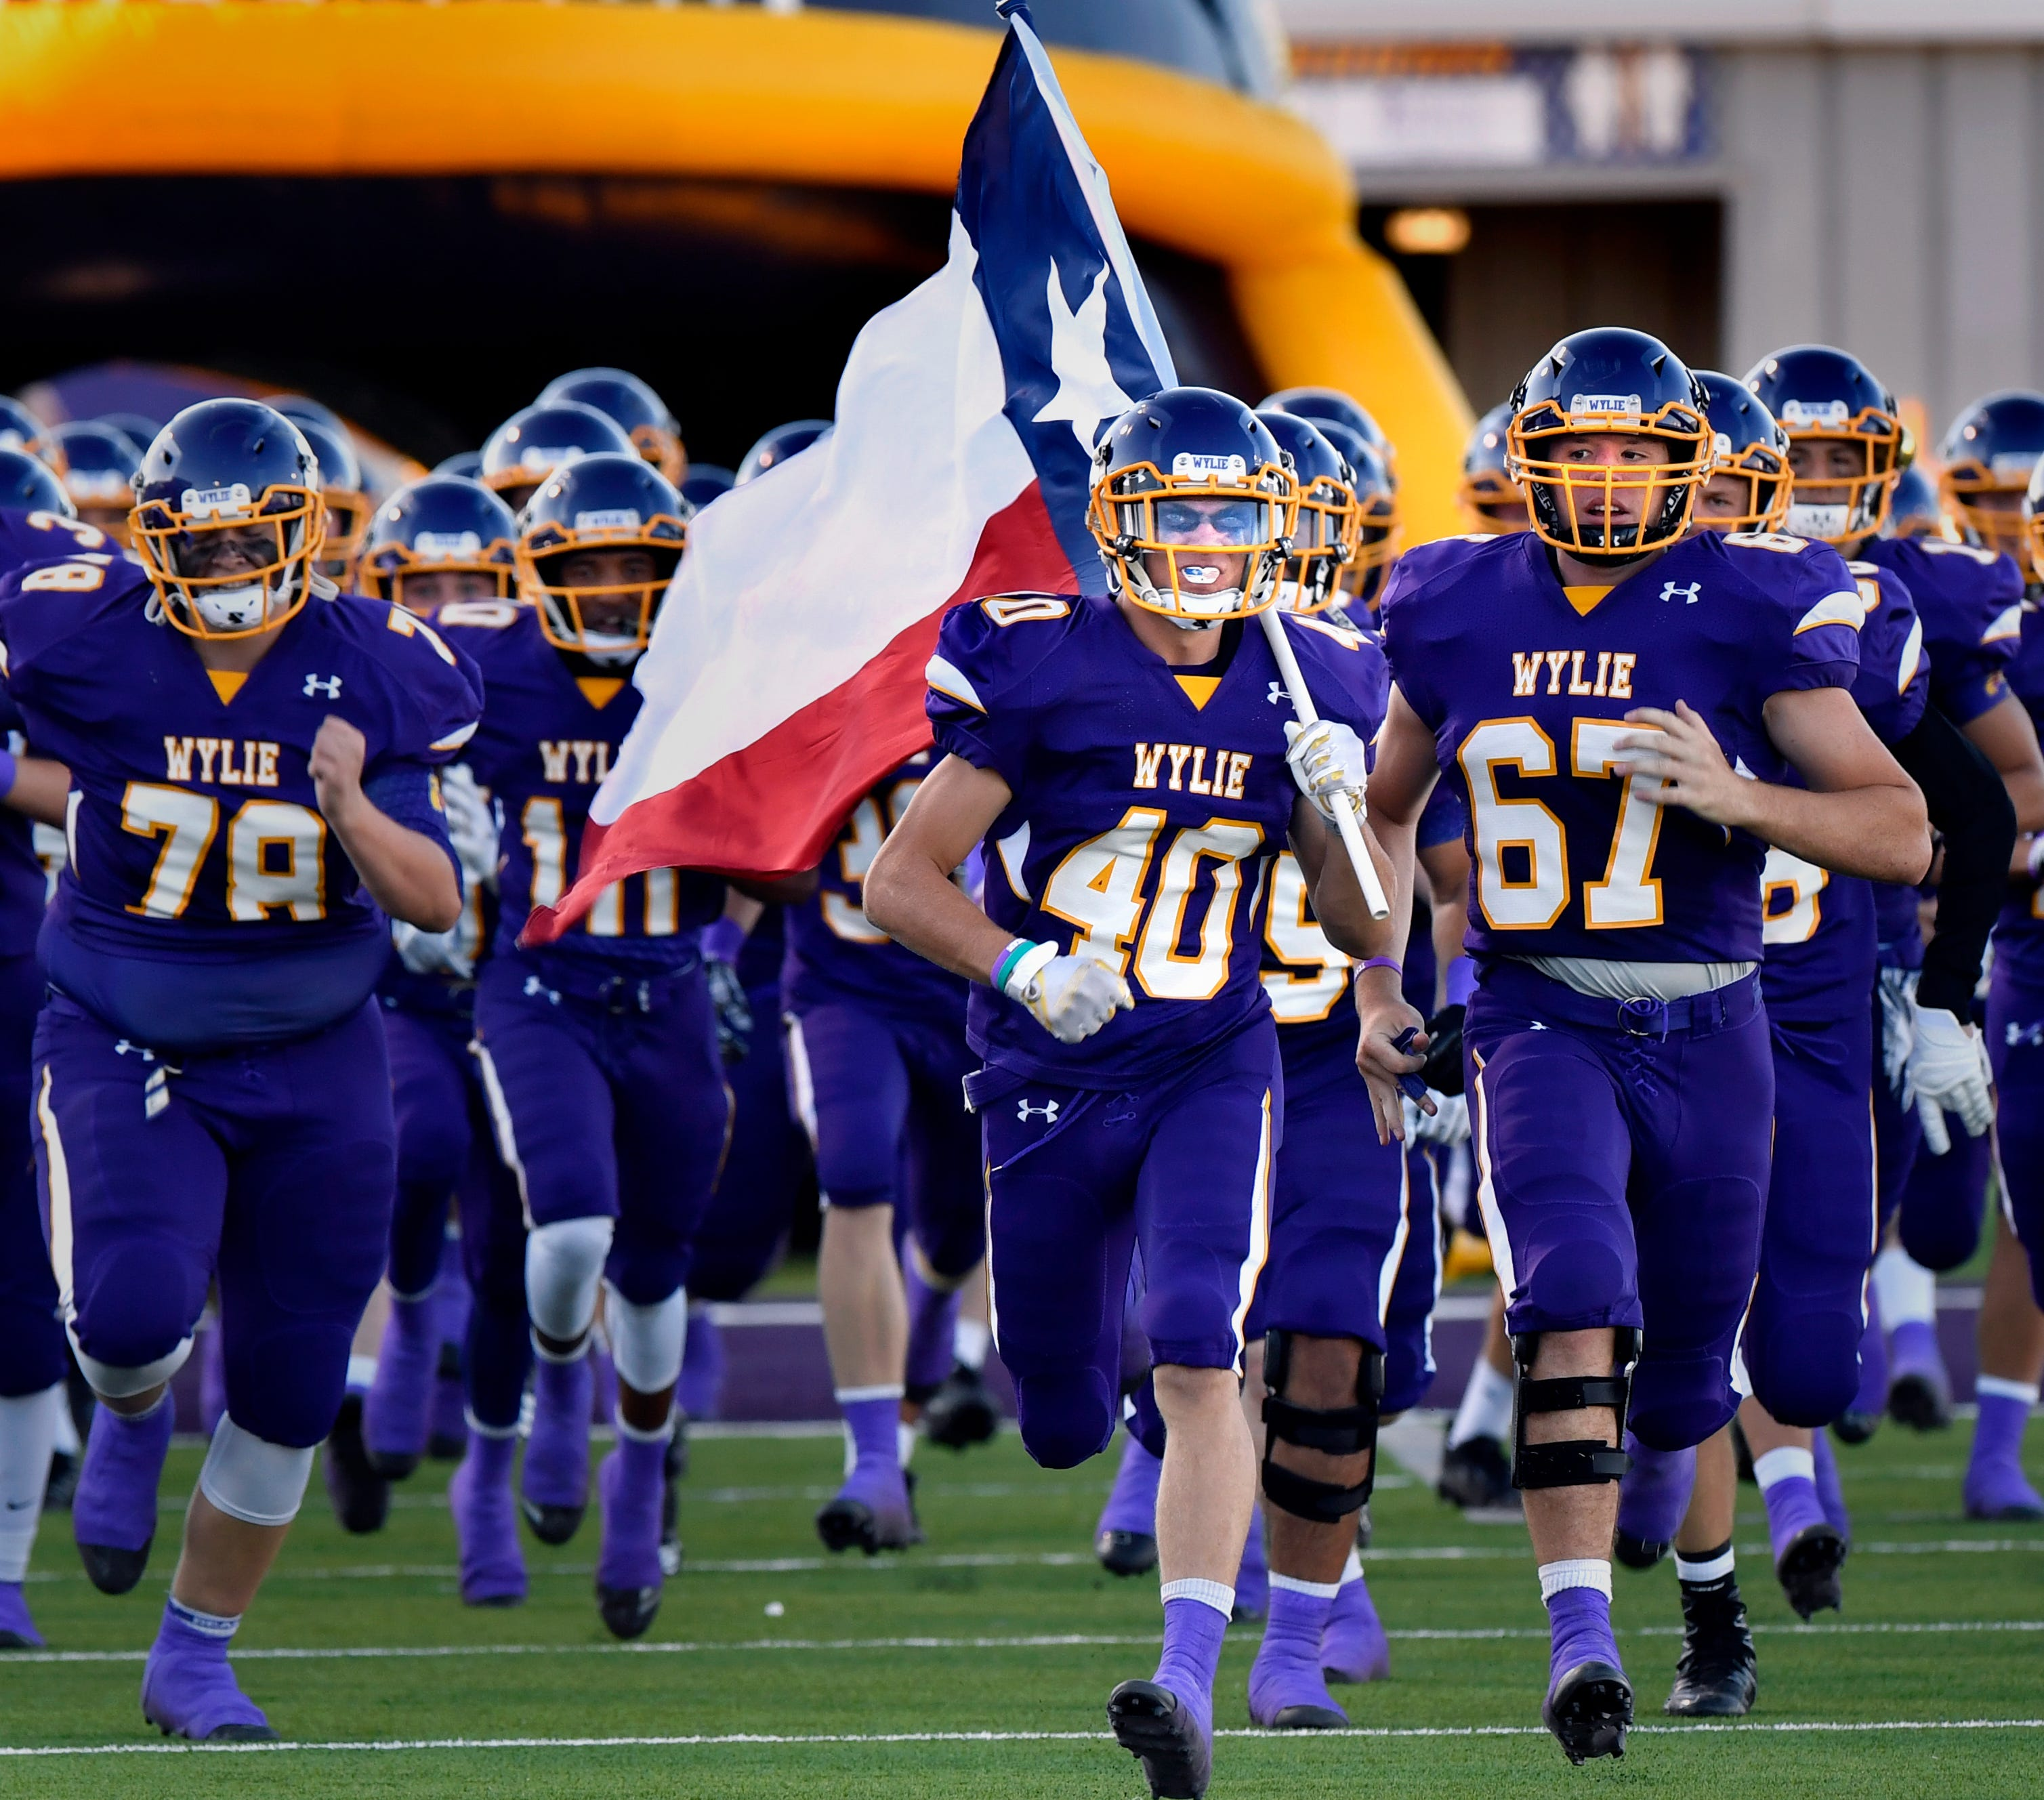 Wylie's Brazos Ham carries the Texas flag as he and the other Bulldogs take the field for their season opener Friday against Georgetown.